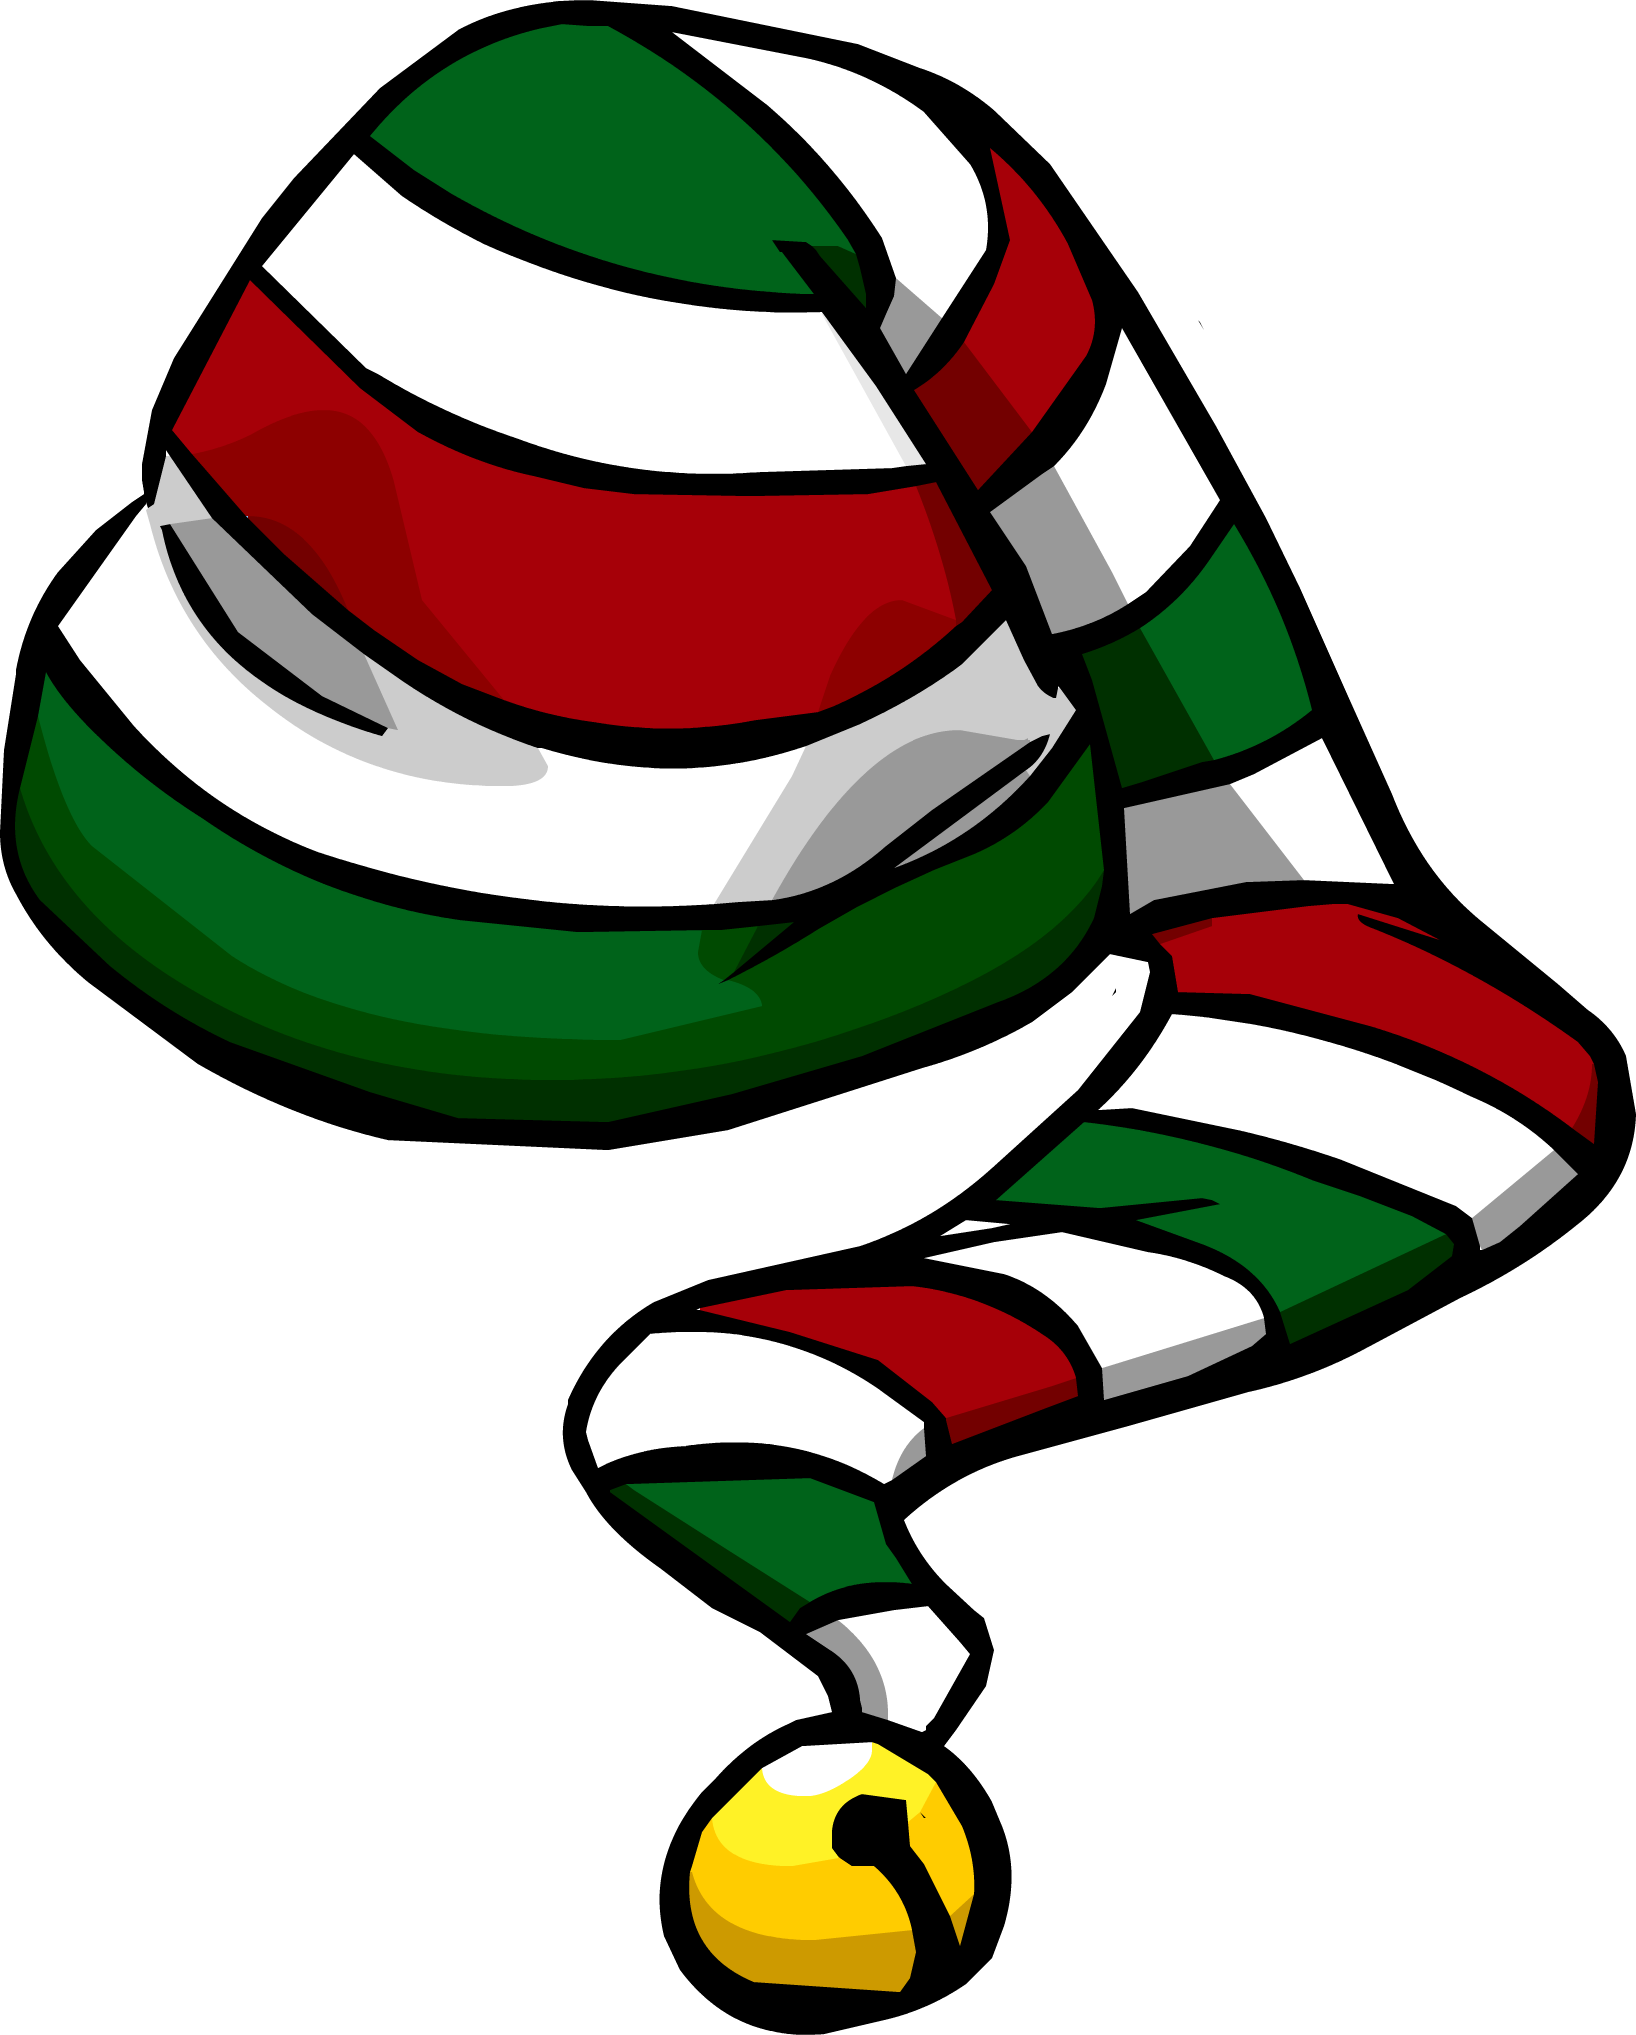 Hats clipart reggae. Candy cane hat club